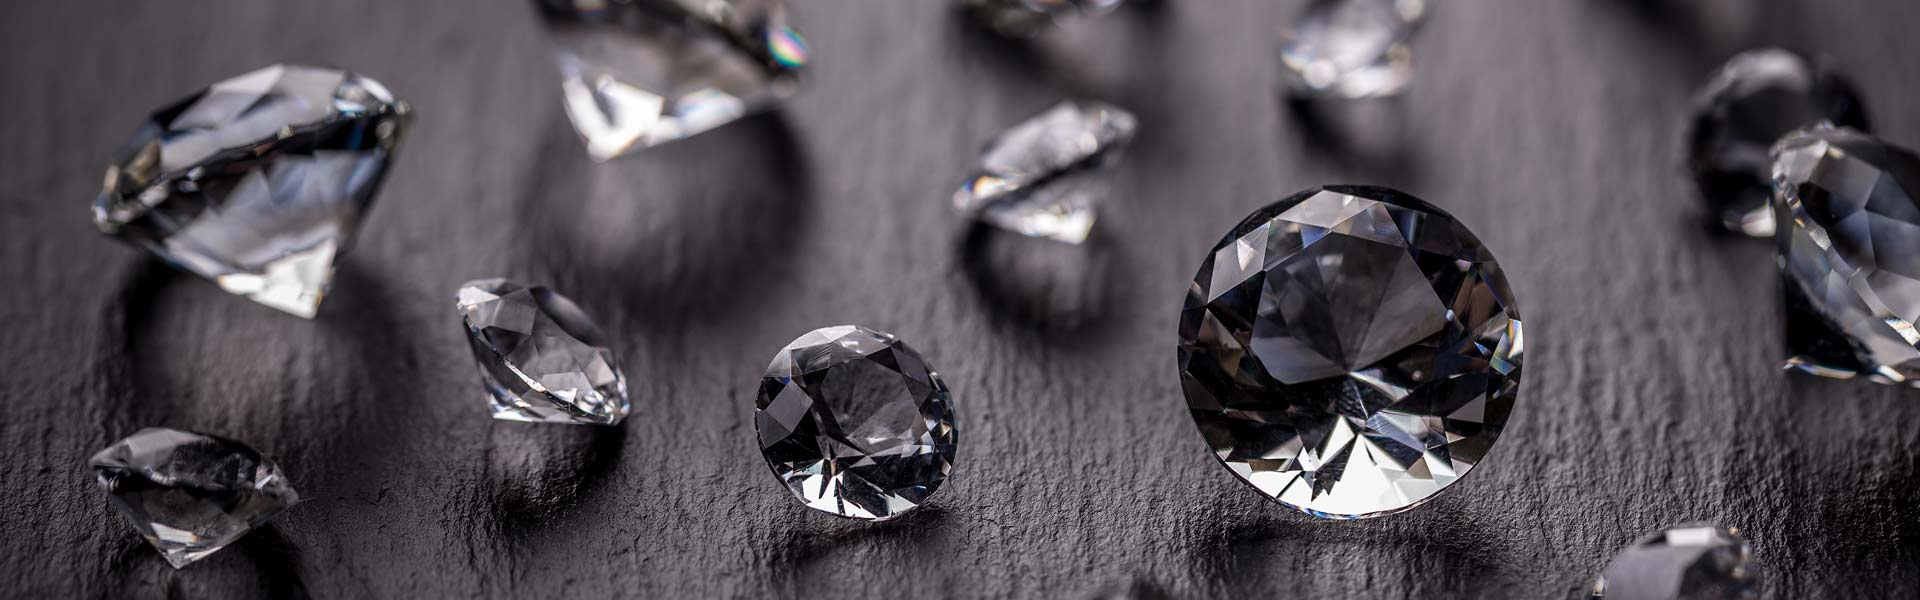 A picture of loose diamonds